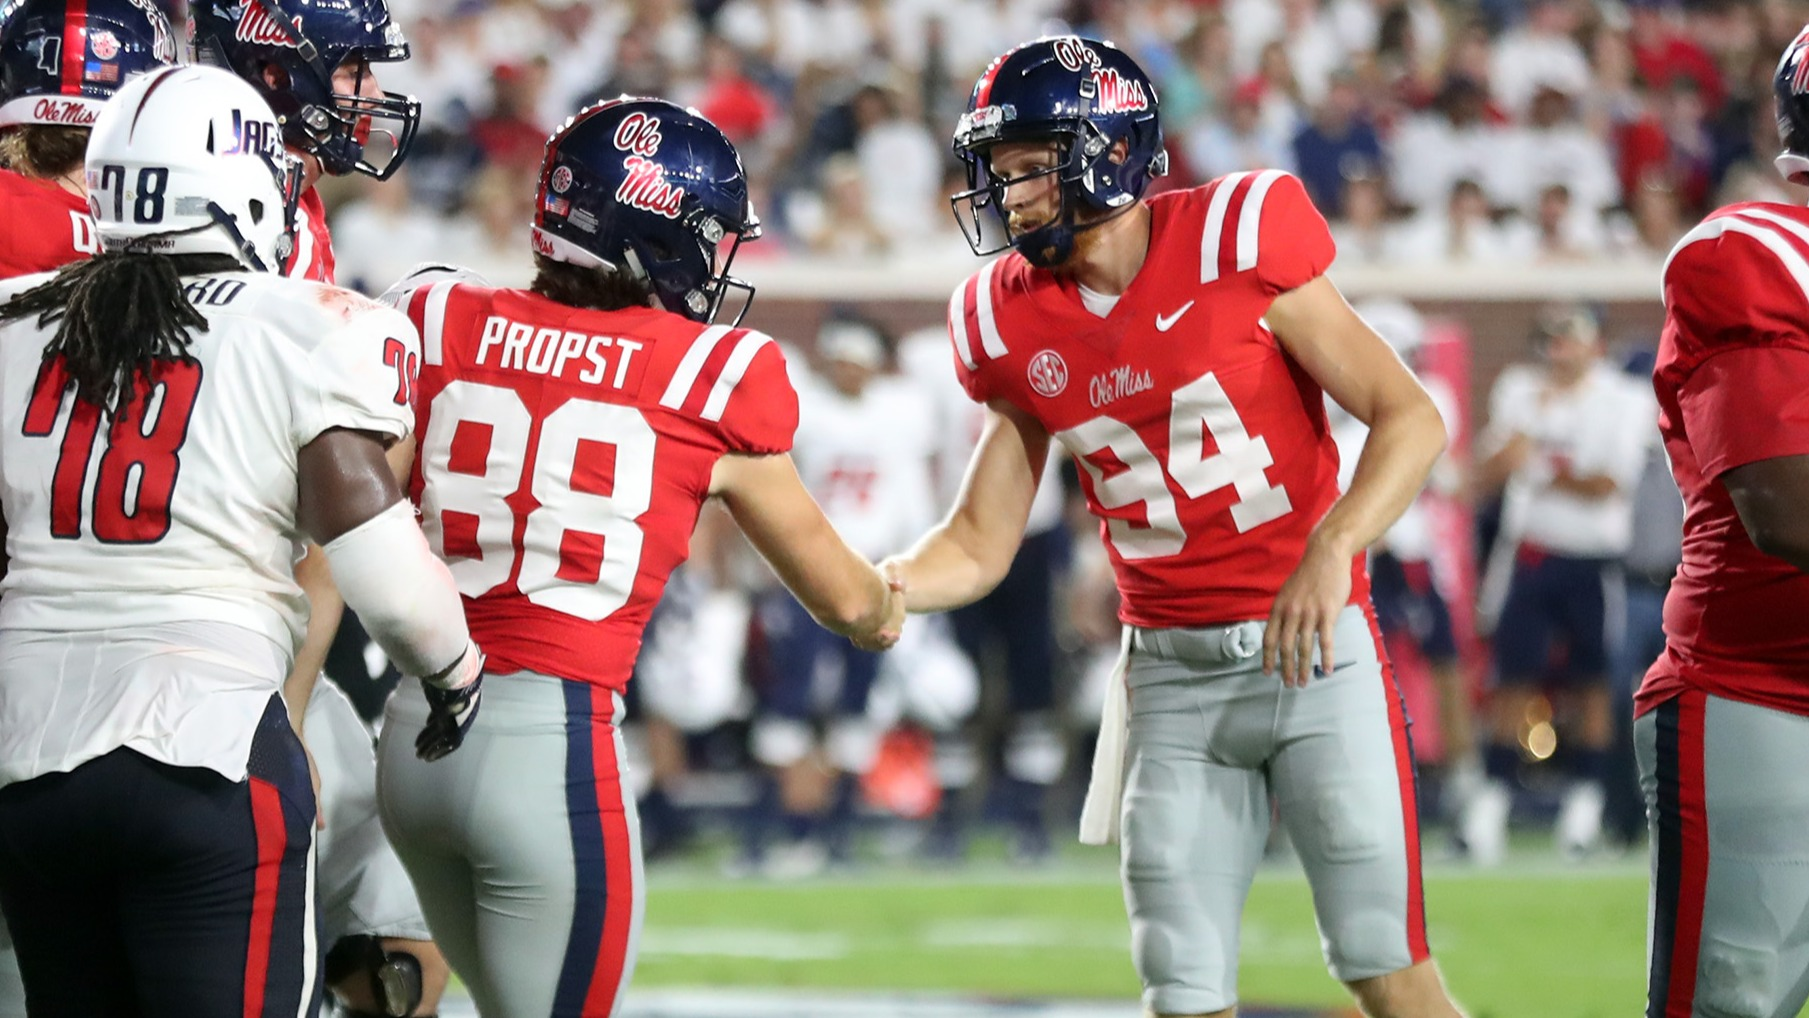 Jack Propst Football Ole Miss Athletics